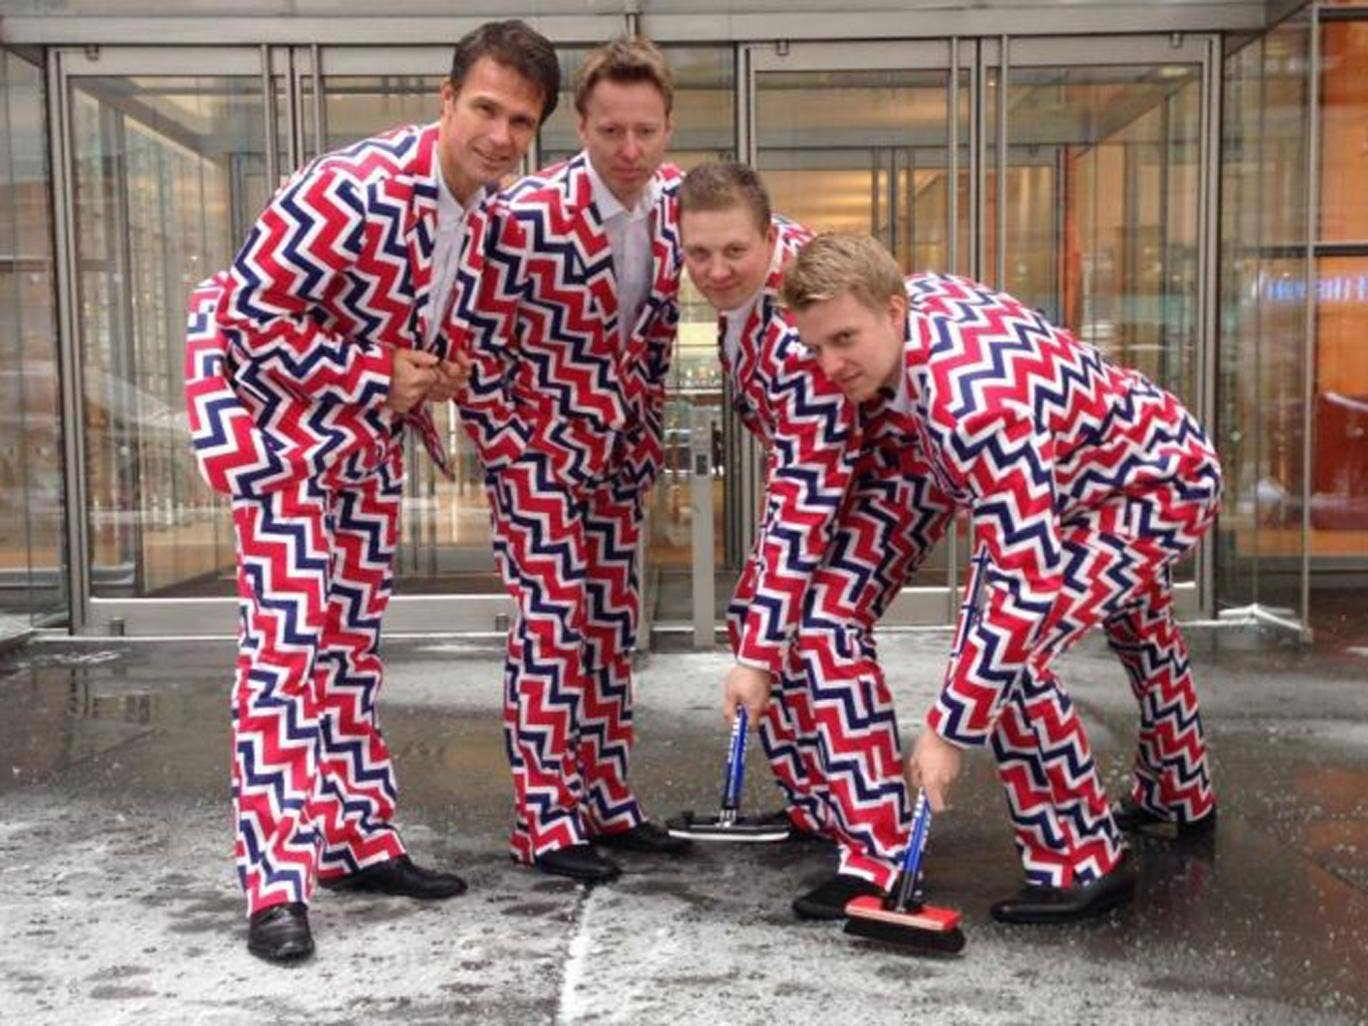 Norway's curling team has unveiled its understated uniform design for the 2014 Sochi Winter Olympics